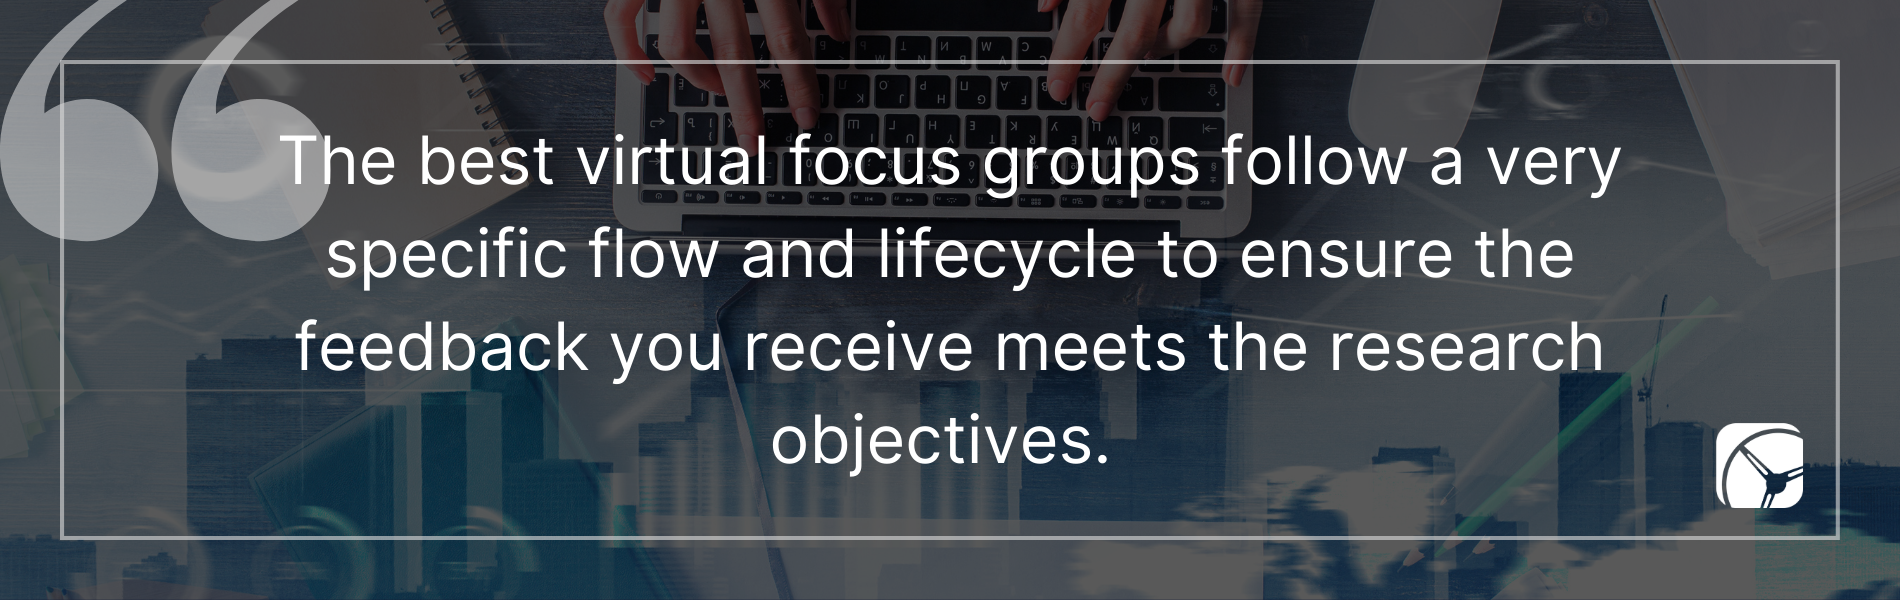 The best virtual focus groups follow a very specific flow and lifecycle to ensure the feedback you receive meets the research objectives.